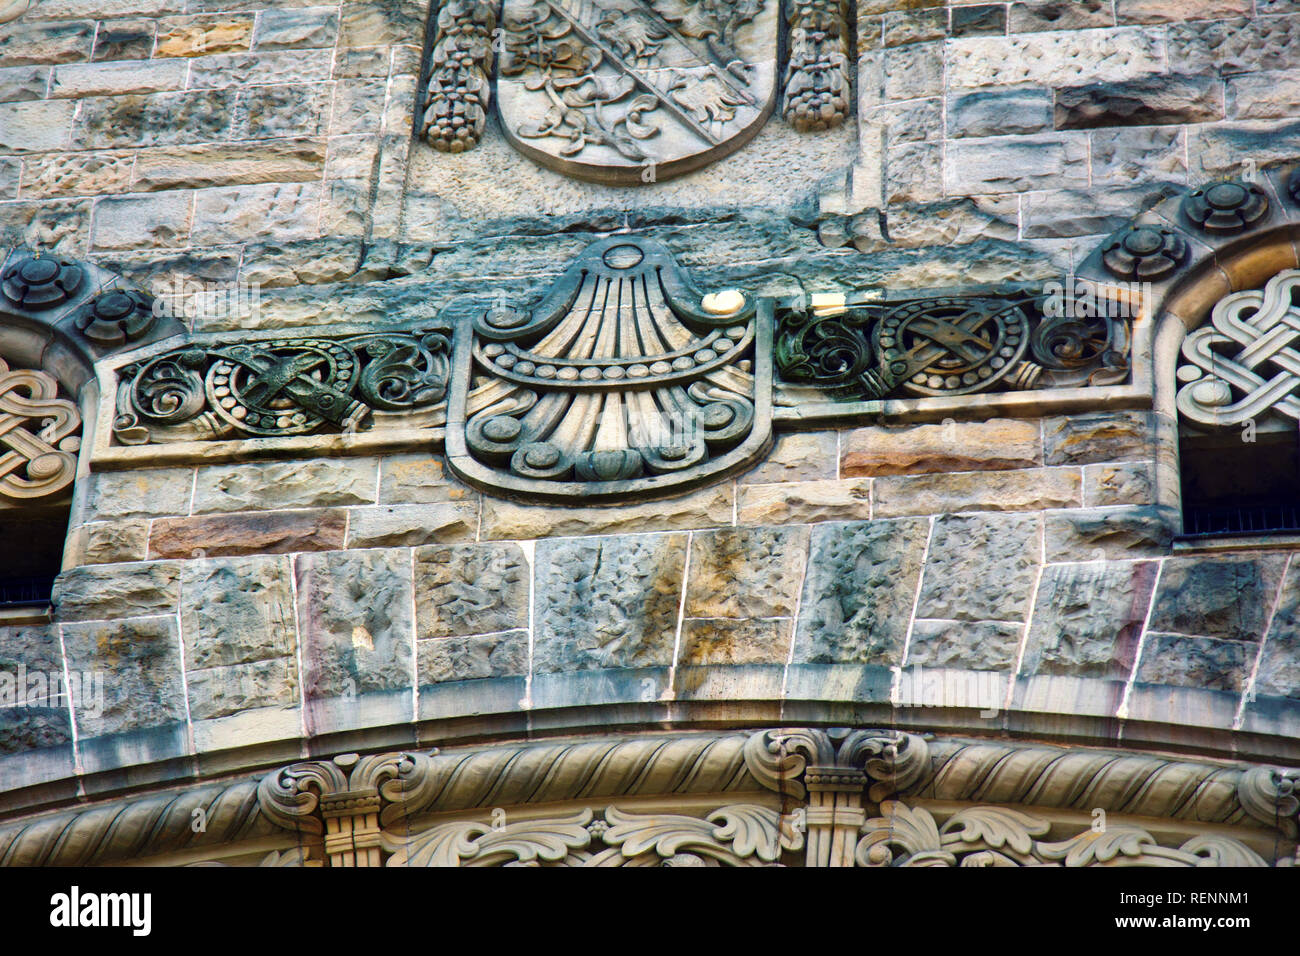 Arabesques of plants, lilies, wreaths, circles, crossed swords encircle the monumental building in Metz. Stone carving - Stock Image